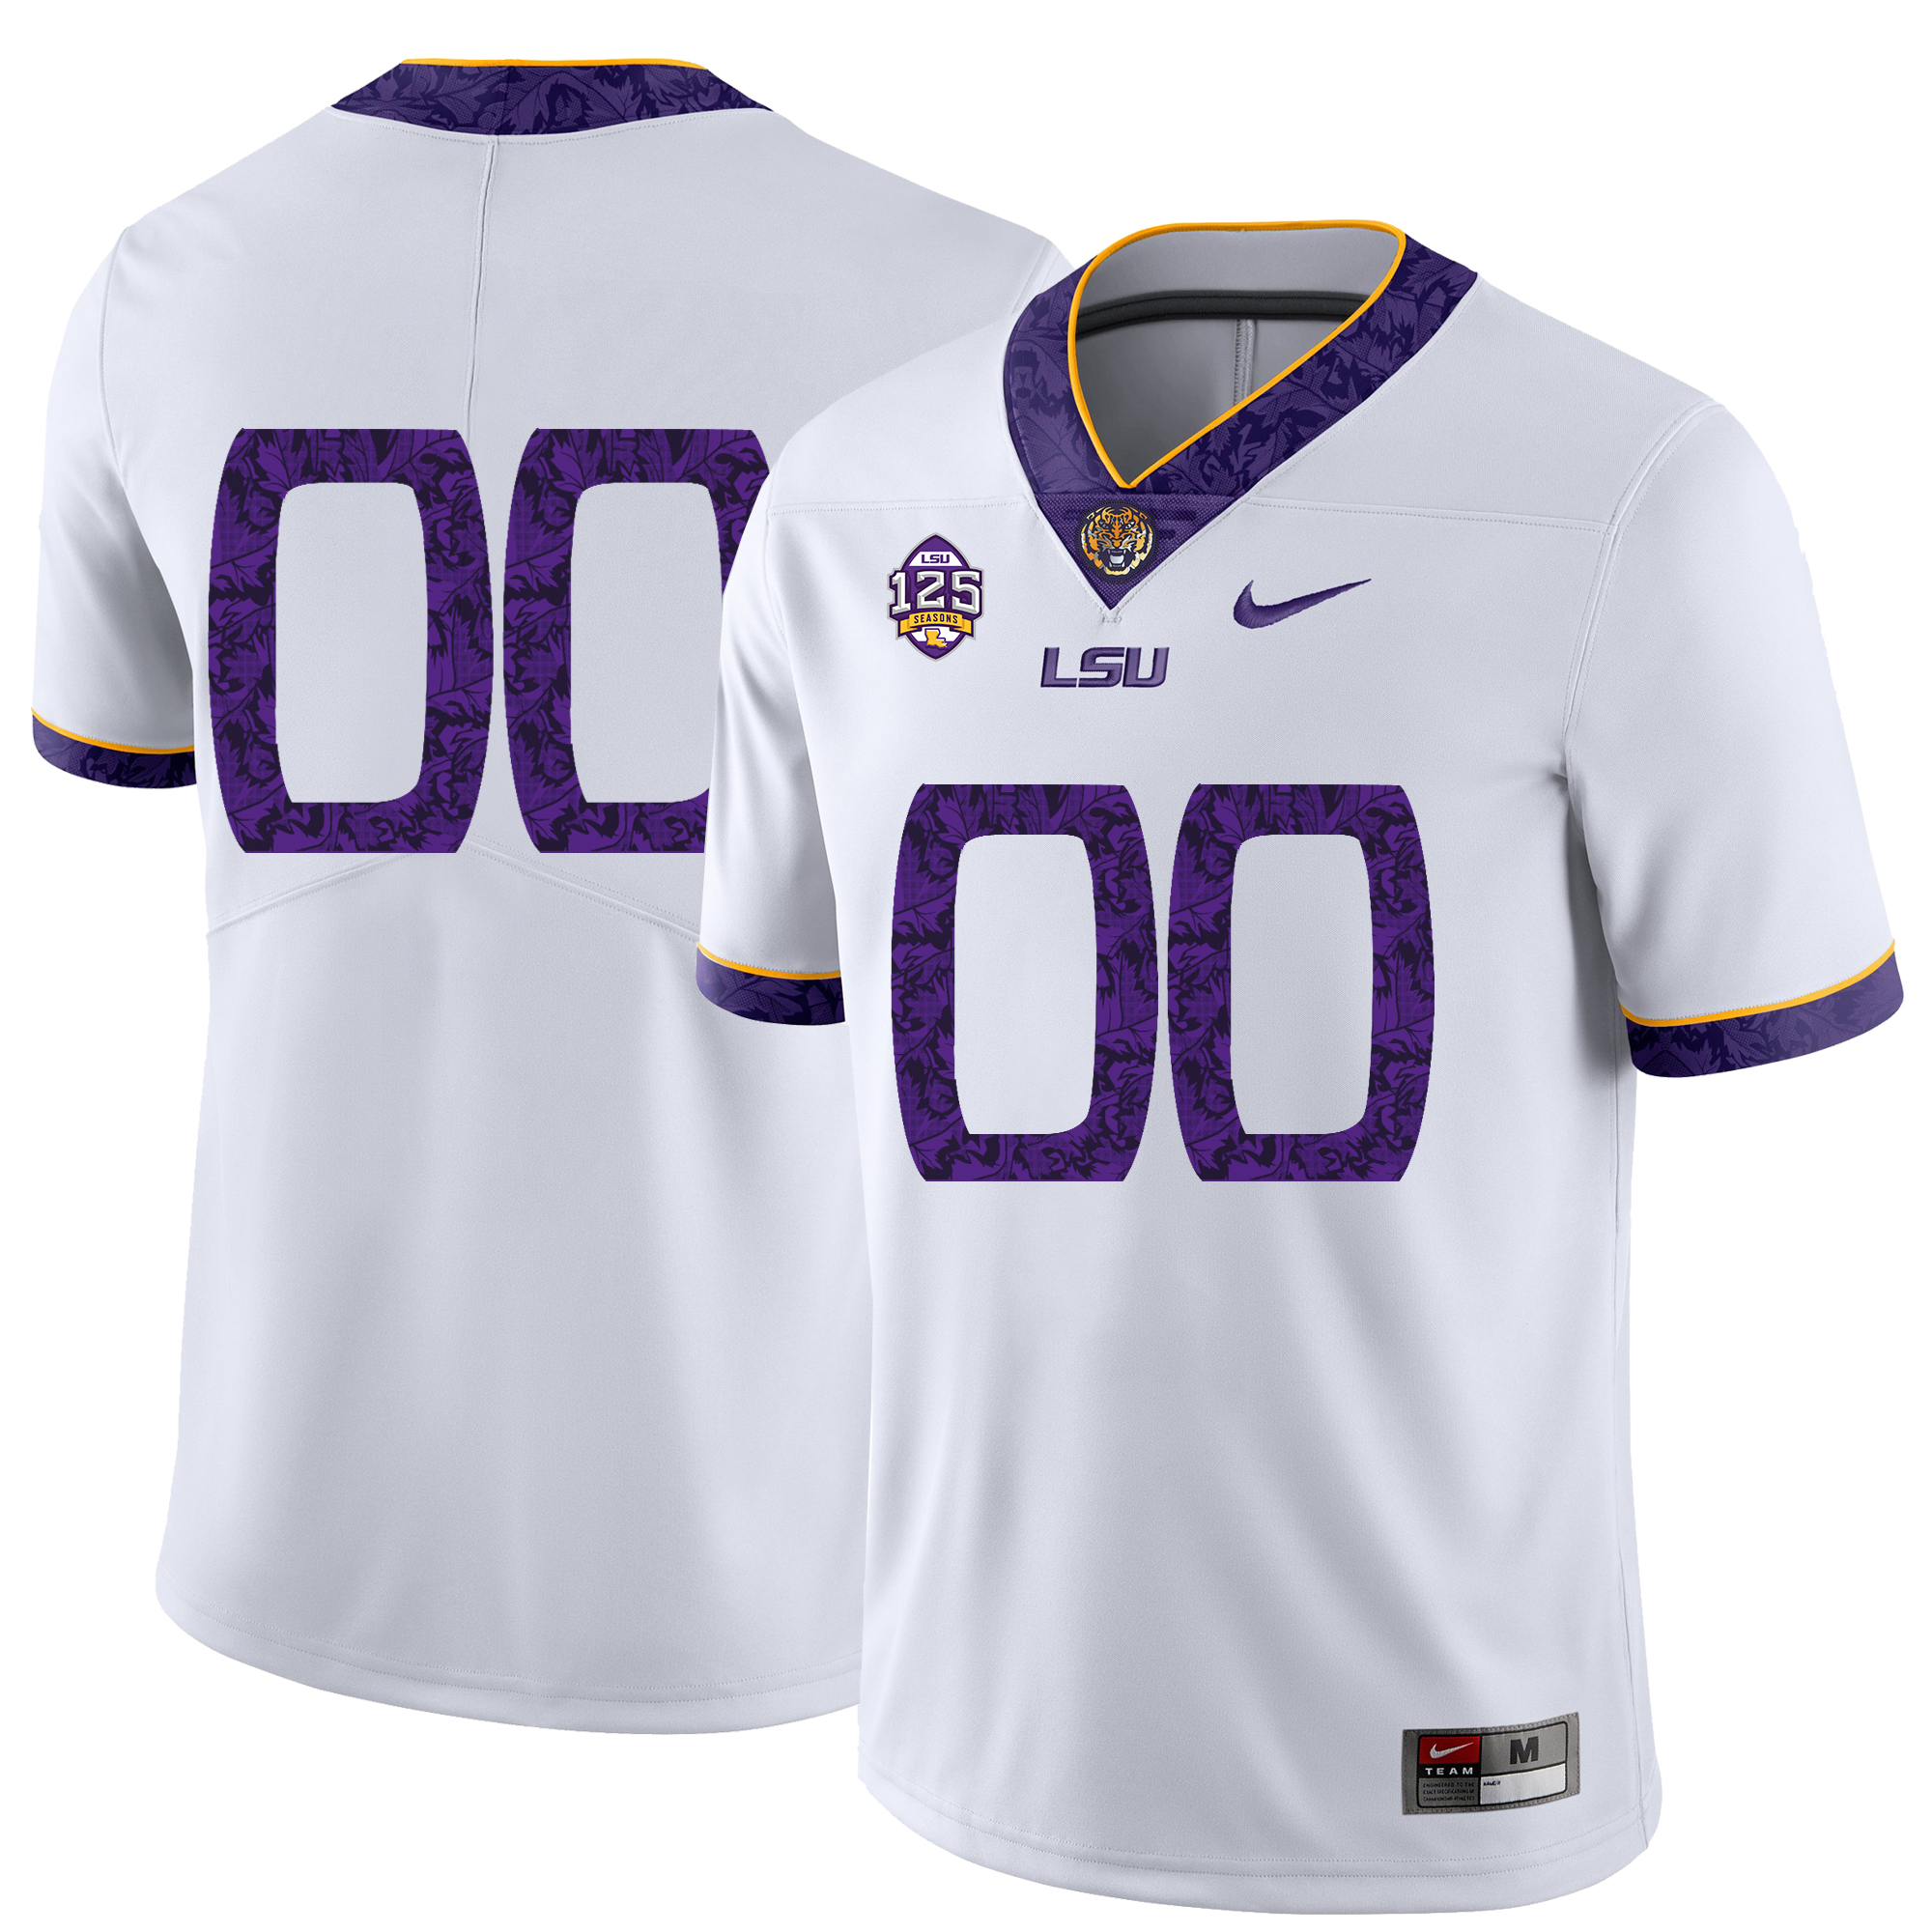 LSU Tigers White Men's Fashion Customized Nike College Football Jersey